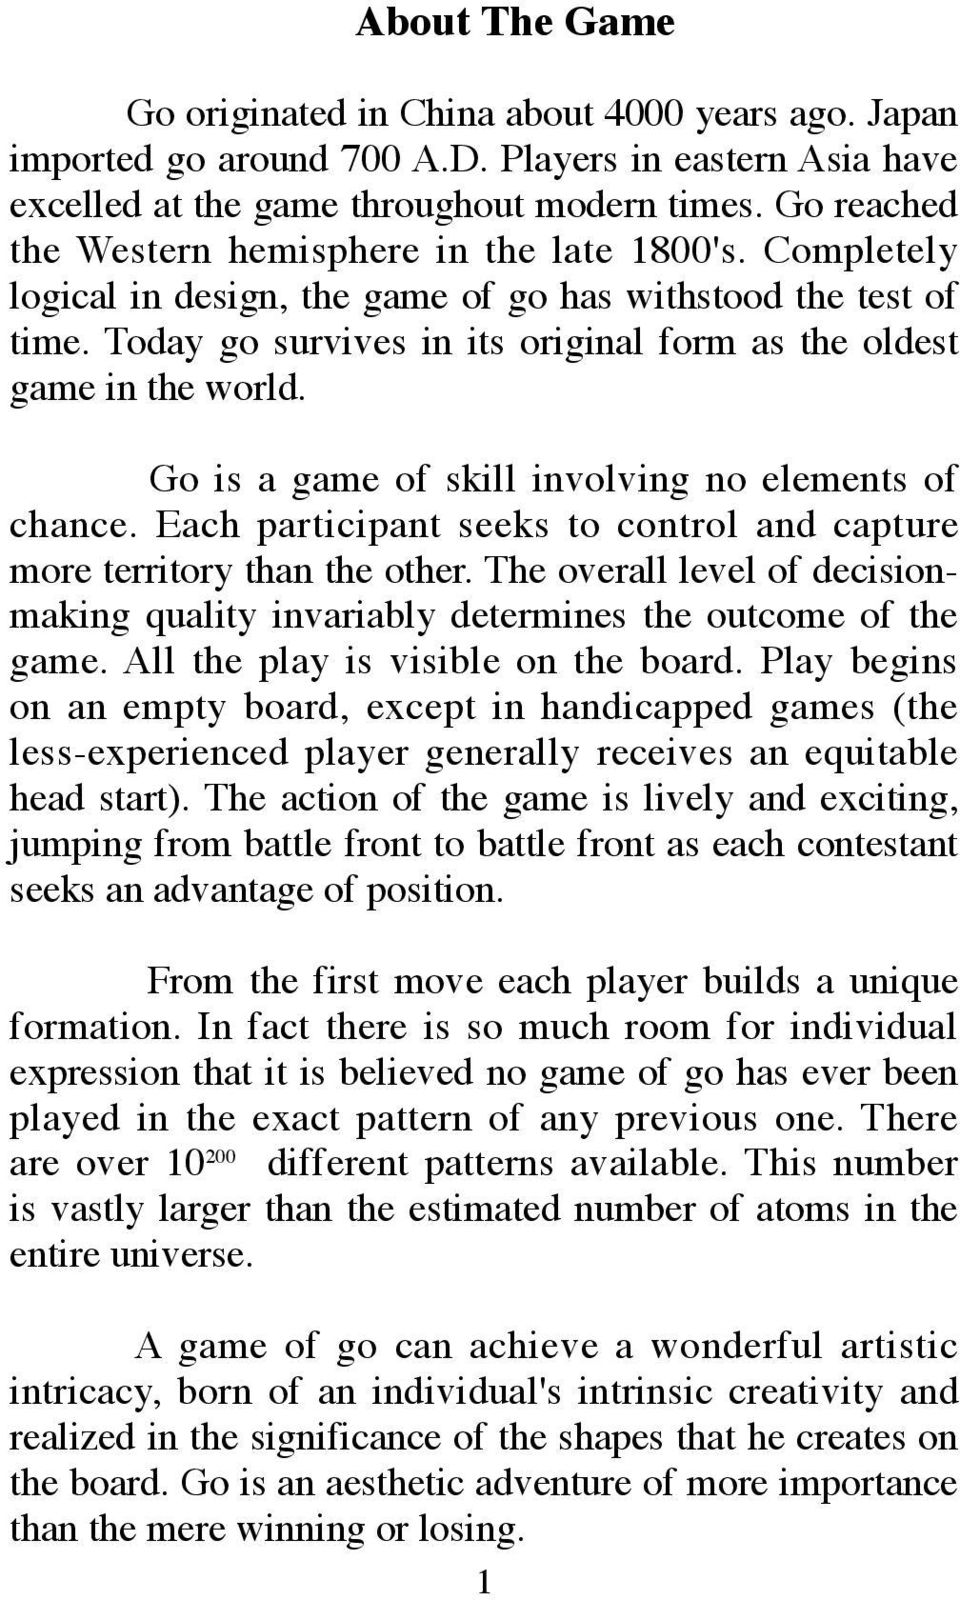 Today go survives in its original form as the oldest game in the world. Go is a game of skill involving no elements of chance.